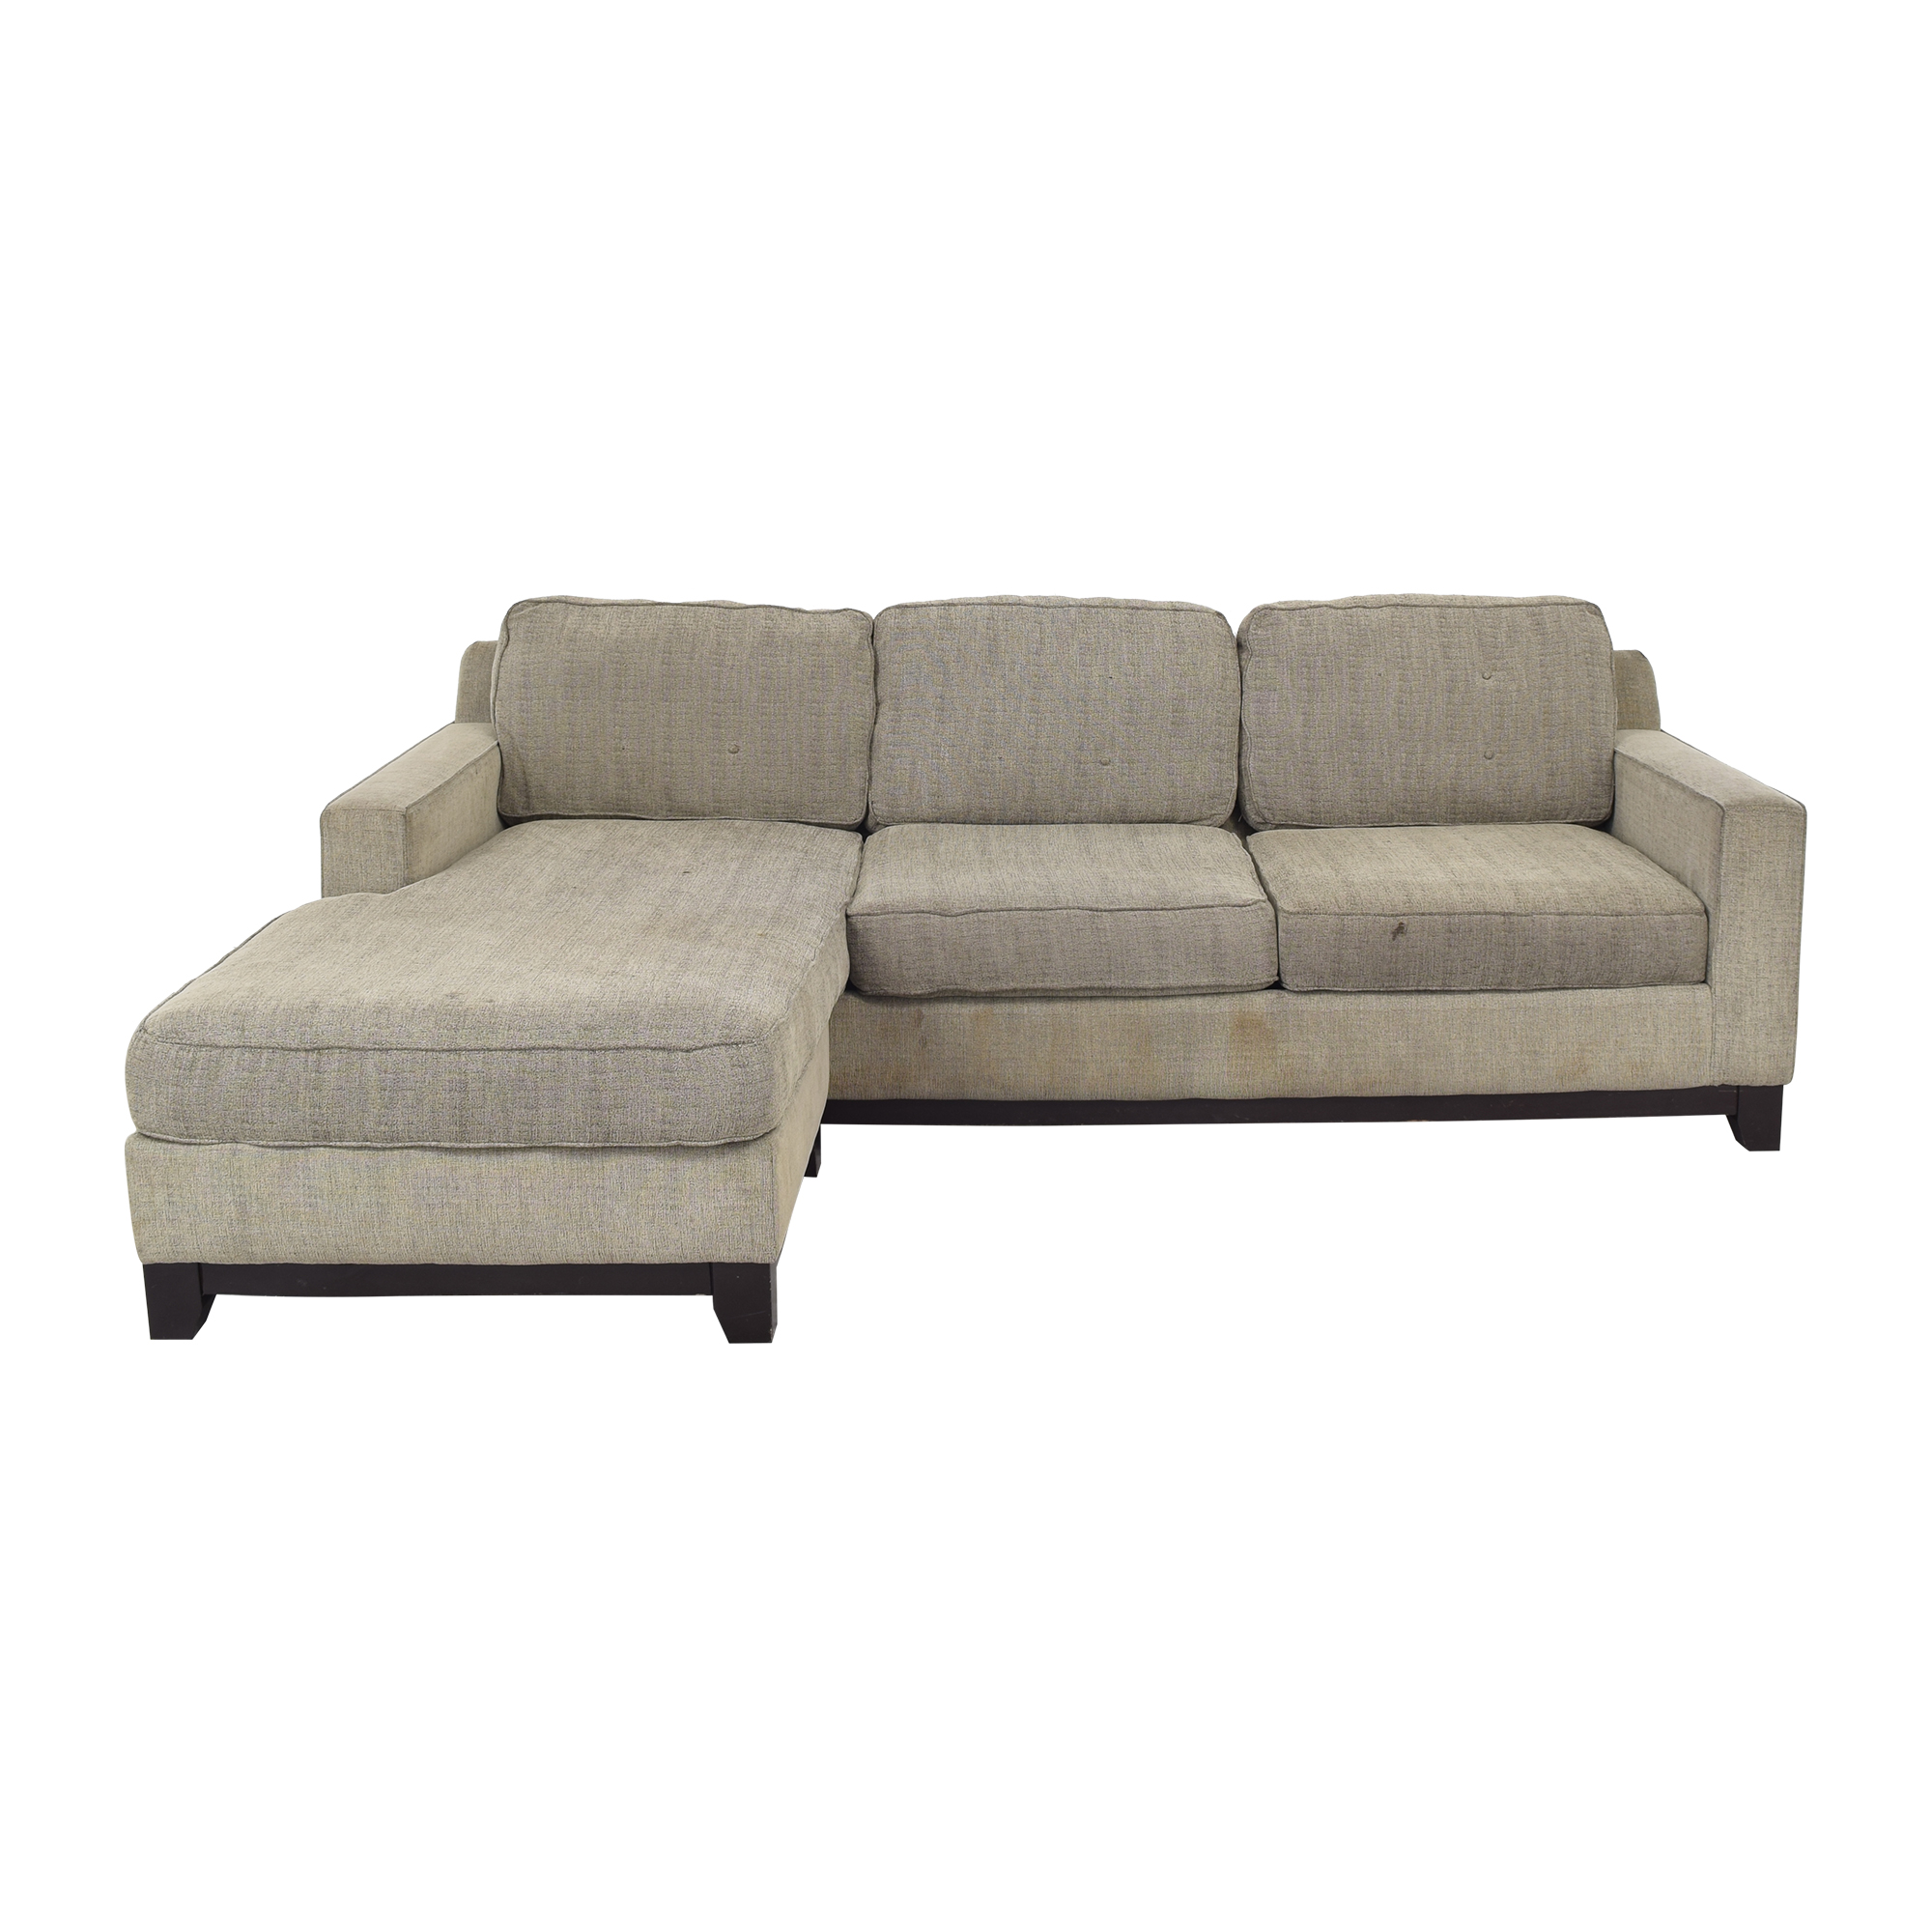 Macy's Jonathan Louis Chaise Sectional Sofa discount